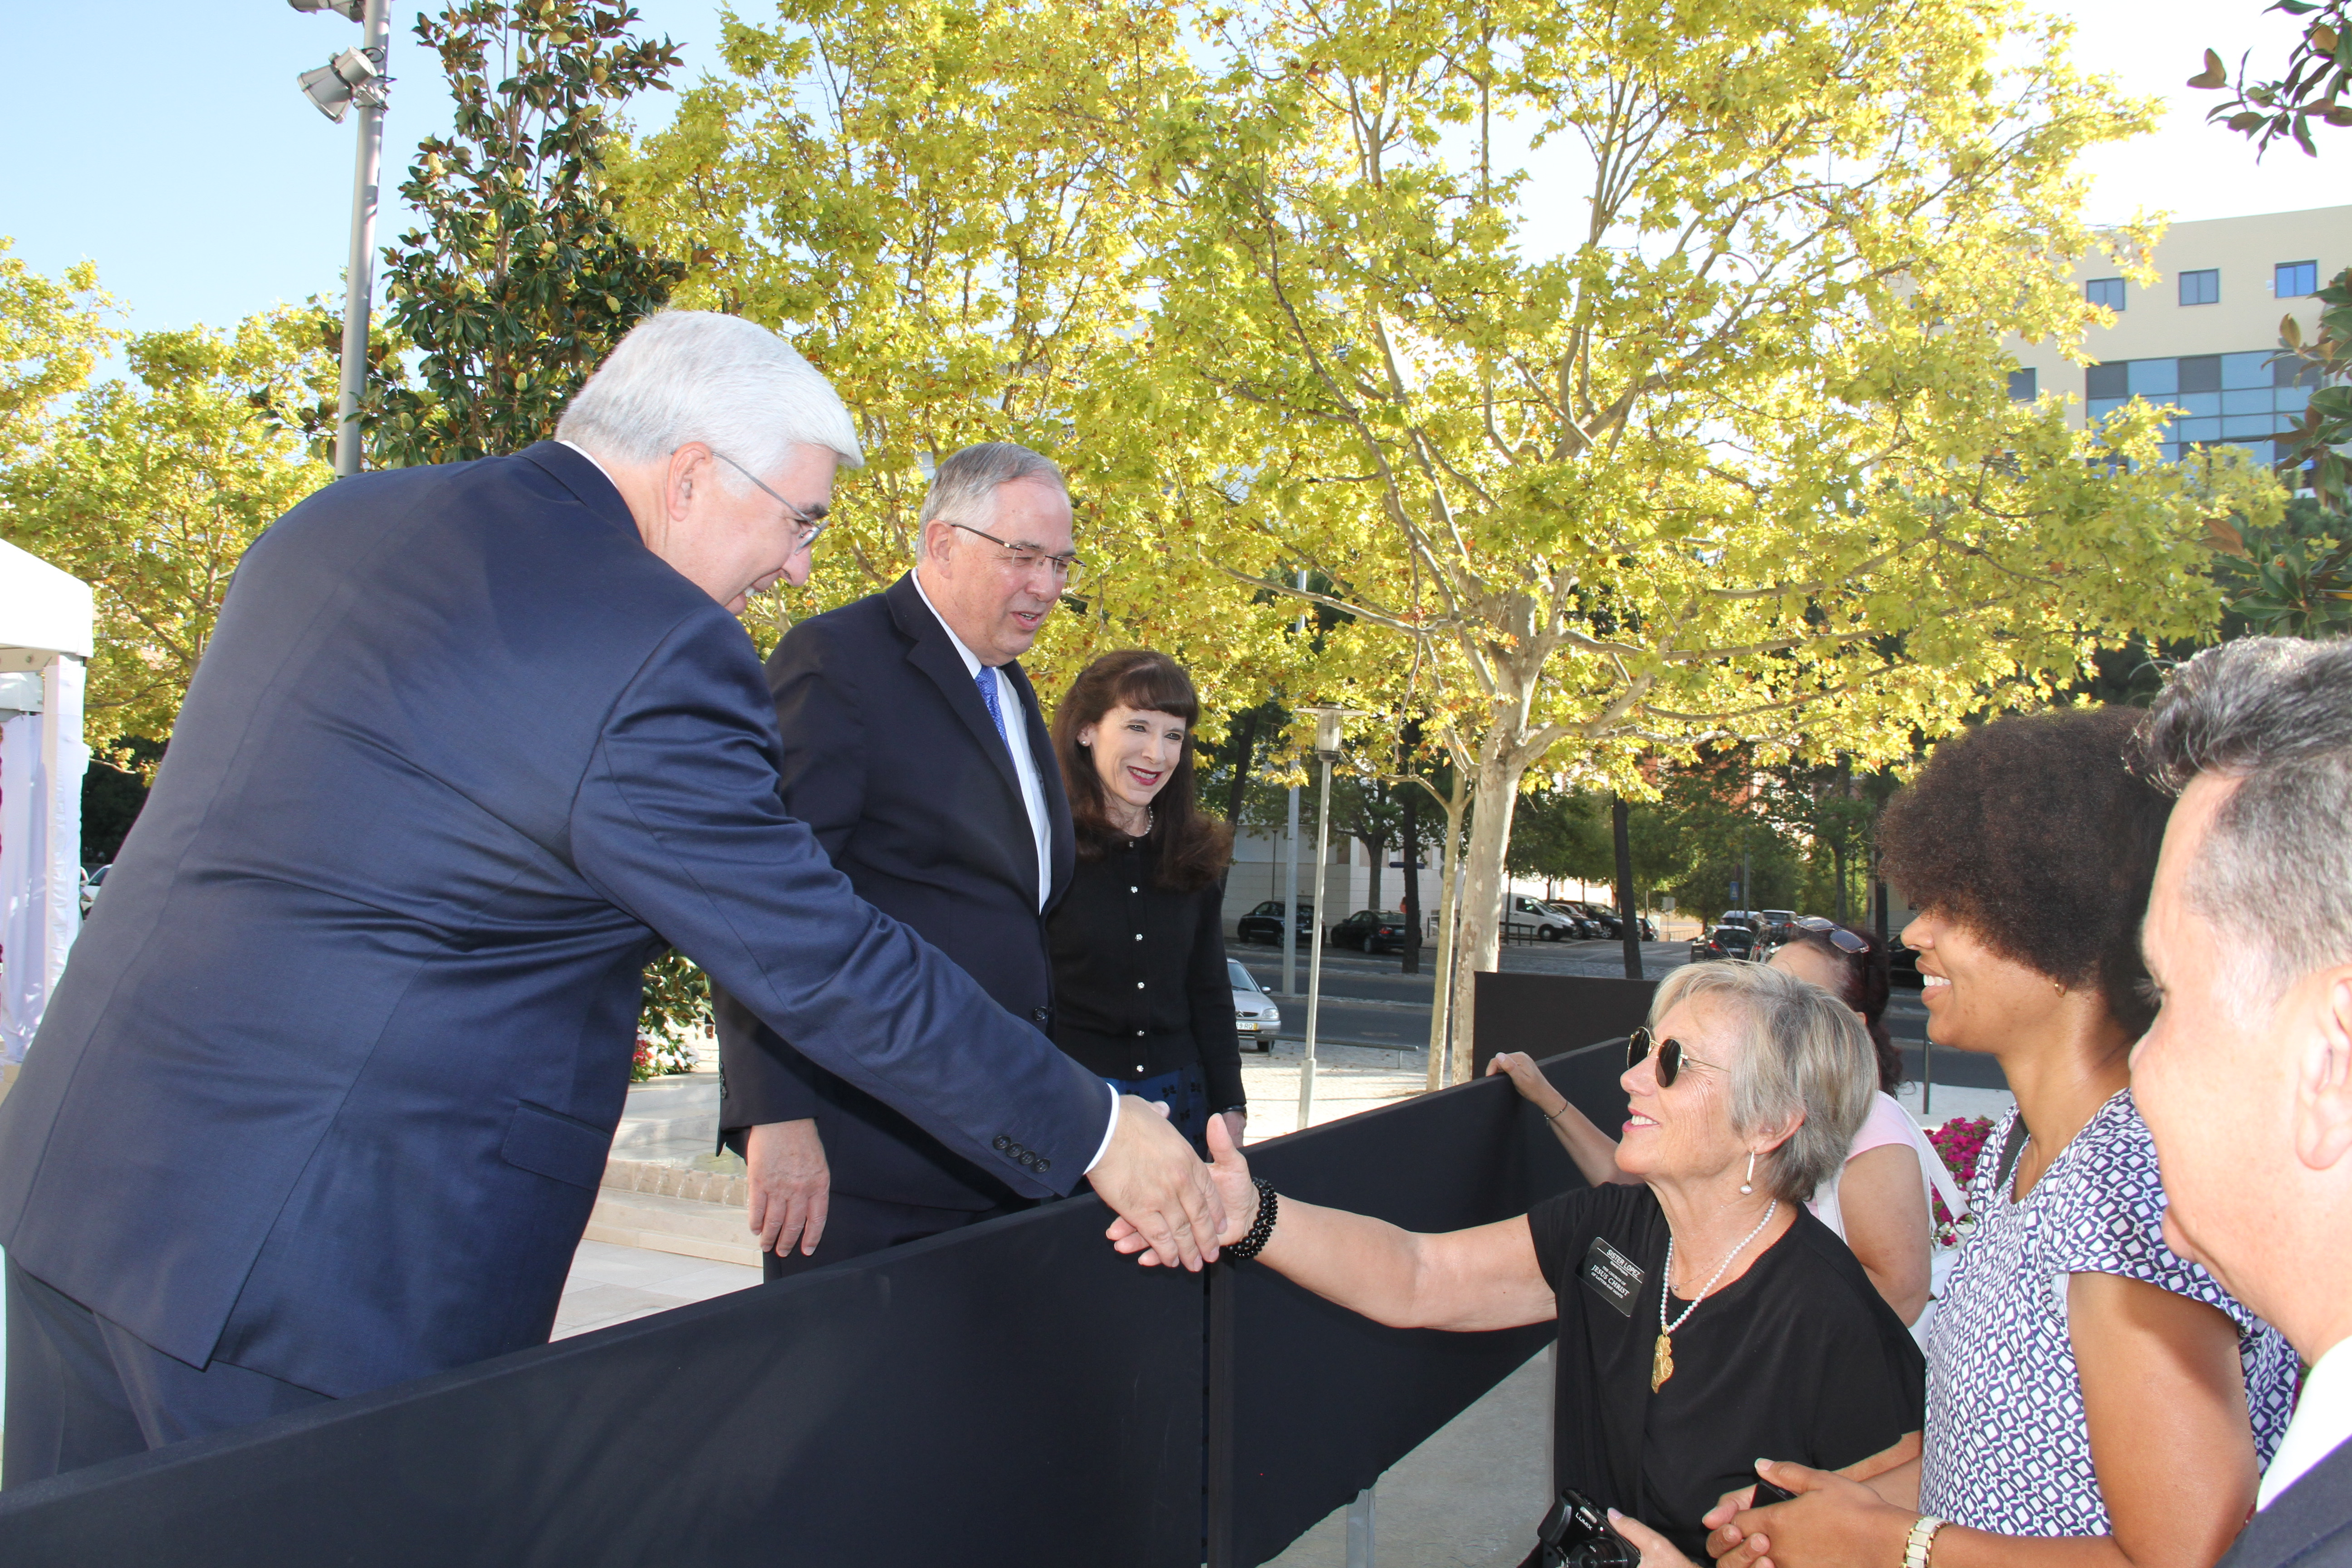 Elder José Teixeira of the Presidency of the Seventy and native of Portugal, greets members outside the Lisbon Portugal Temple along with Elder Neil L. Andersen of the Quorum of the Twelve Apostles and his wife, Sister Kathy Andersen, following a walk-through of the tempe on Saturday, Sept. 14, 2019.